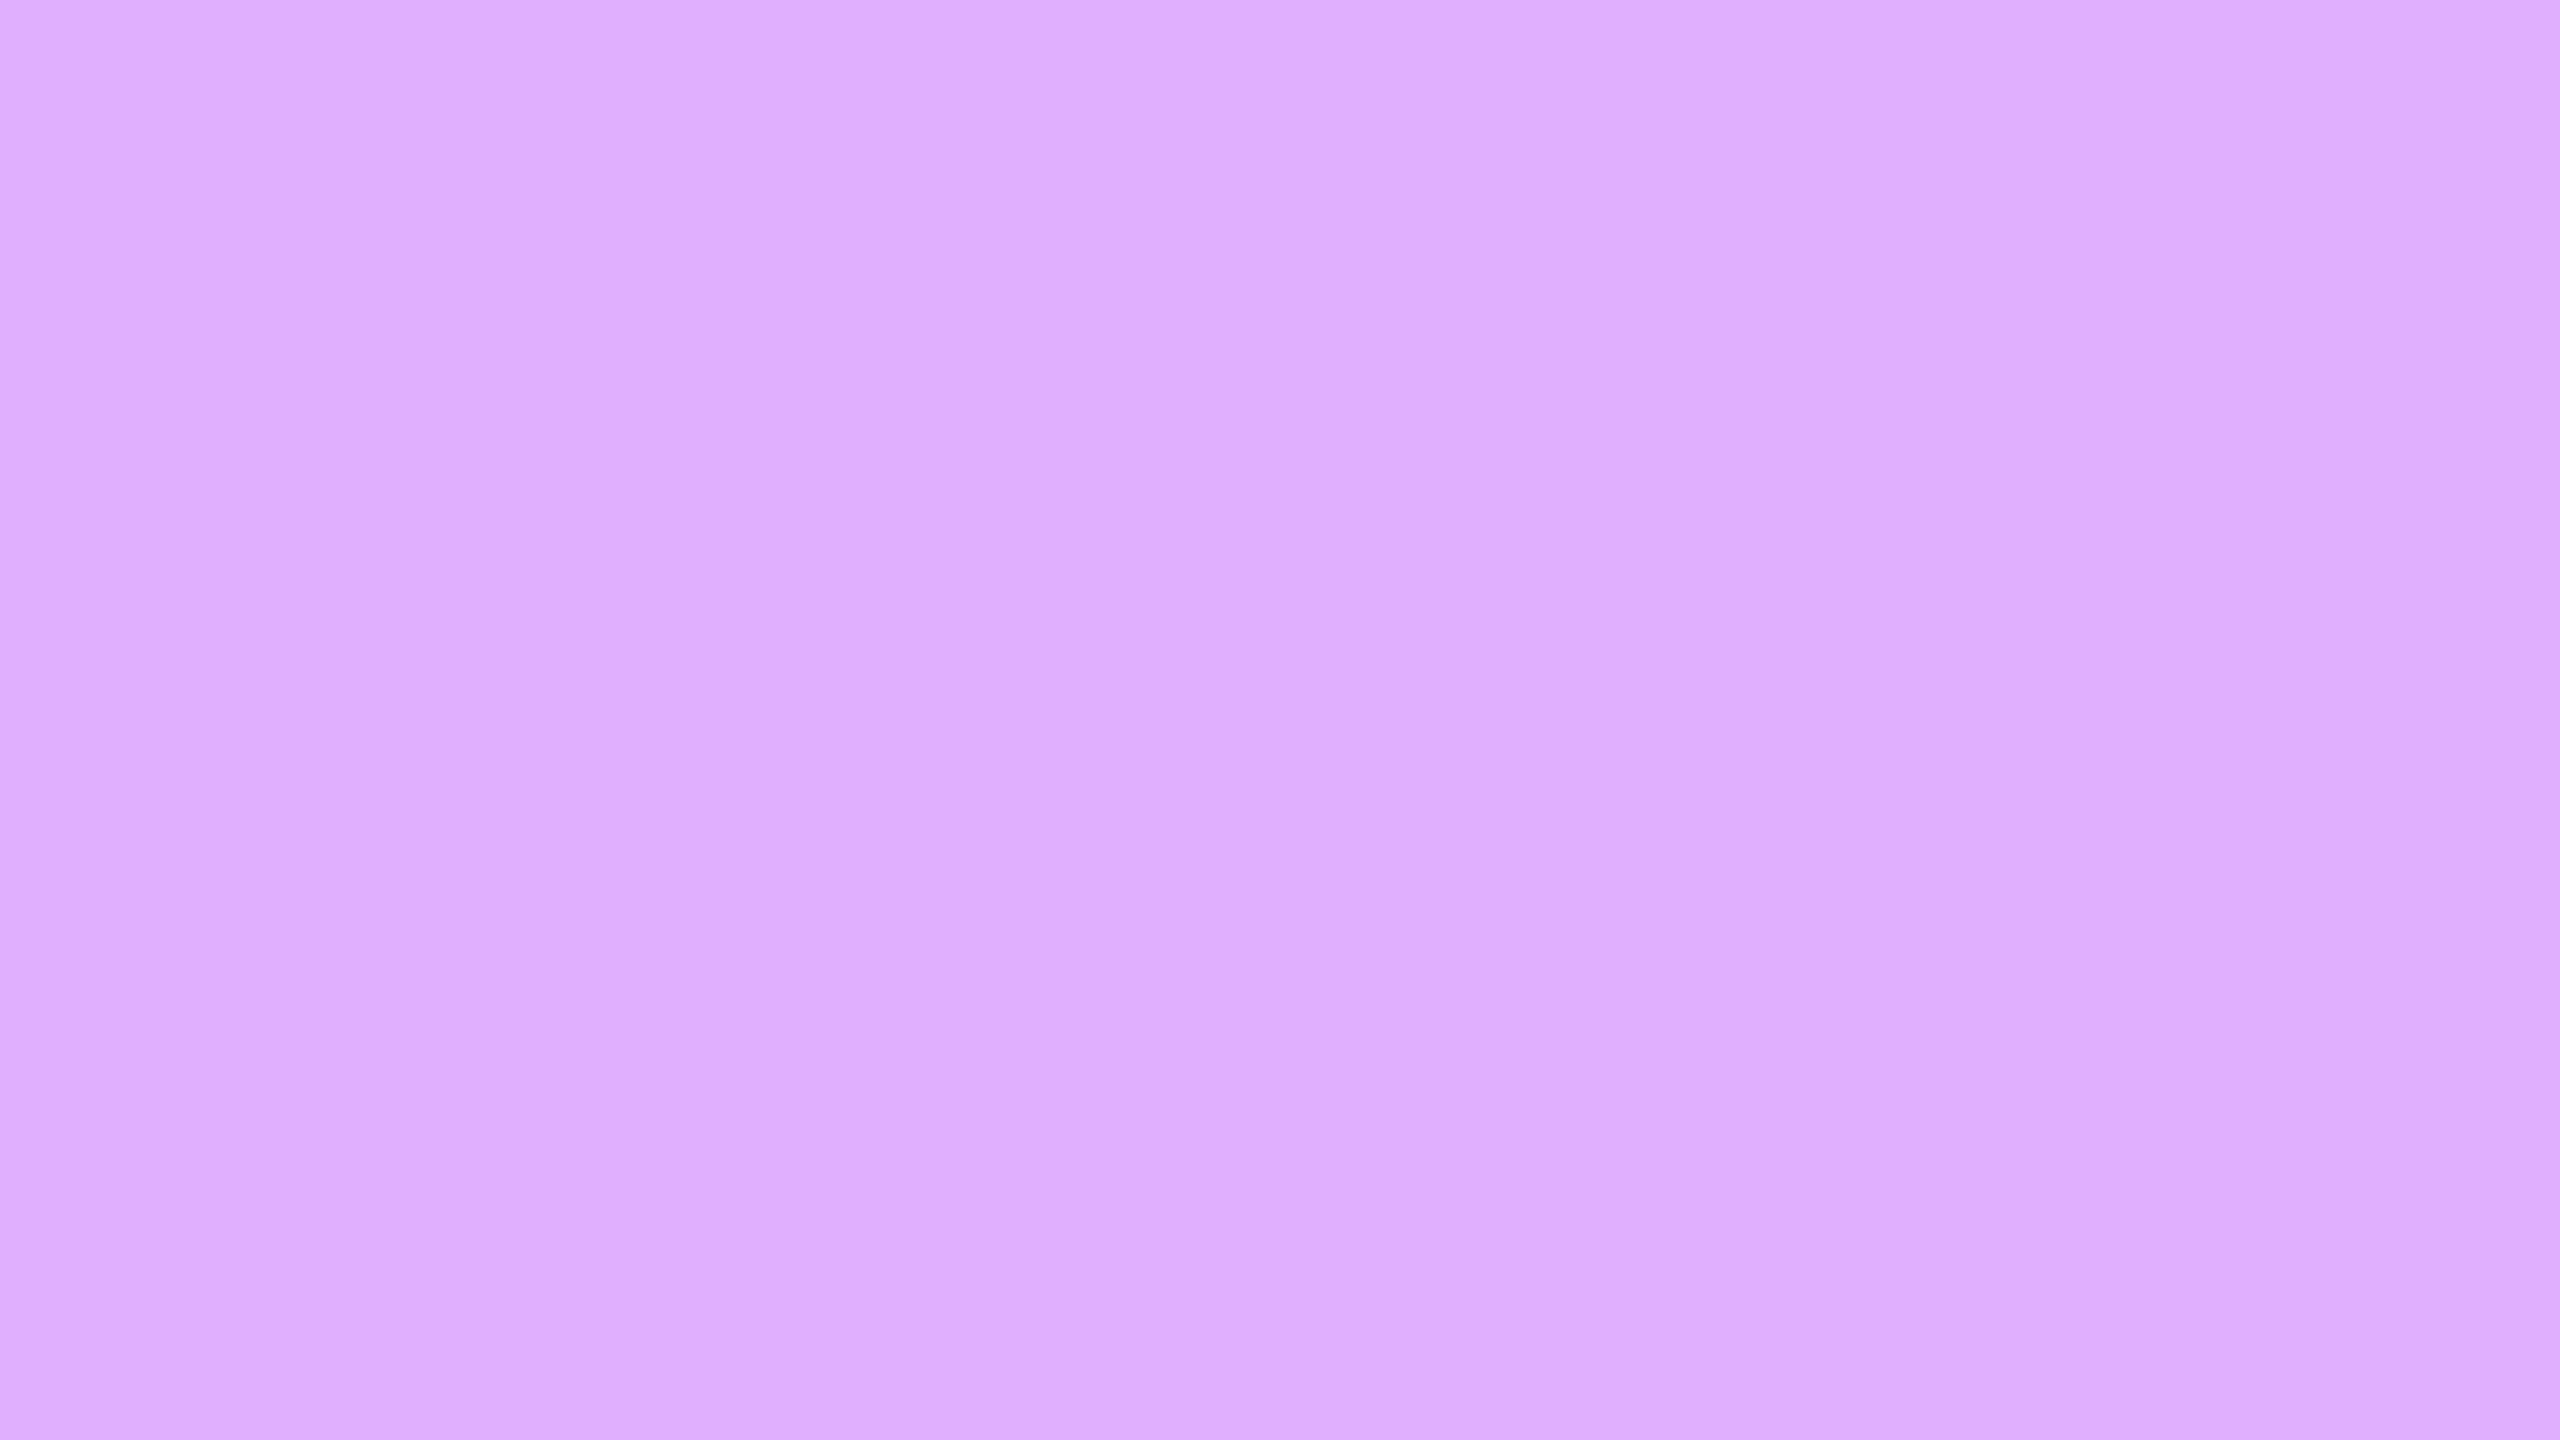 2560x1440 Mauve Solid Color Background